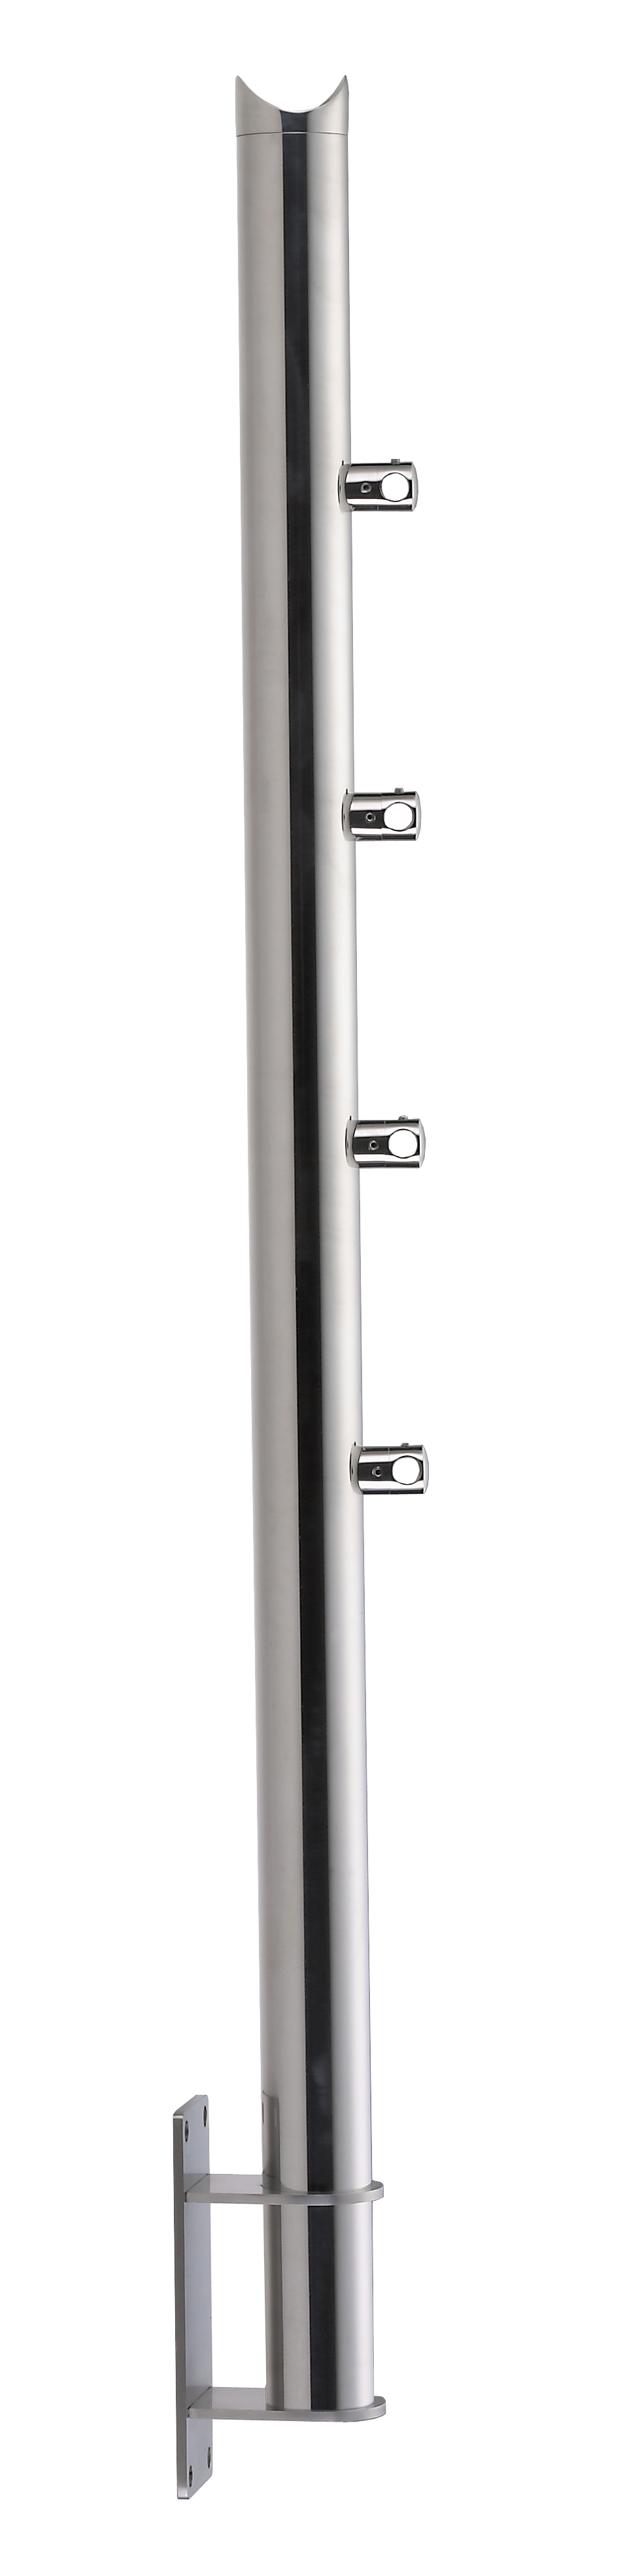 Stainless Steel Balustrade Posts - Tubular - SS:2020479A